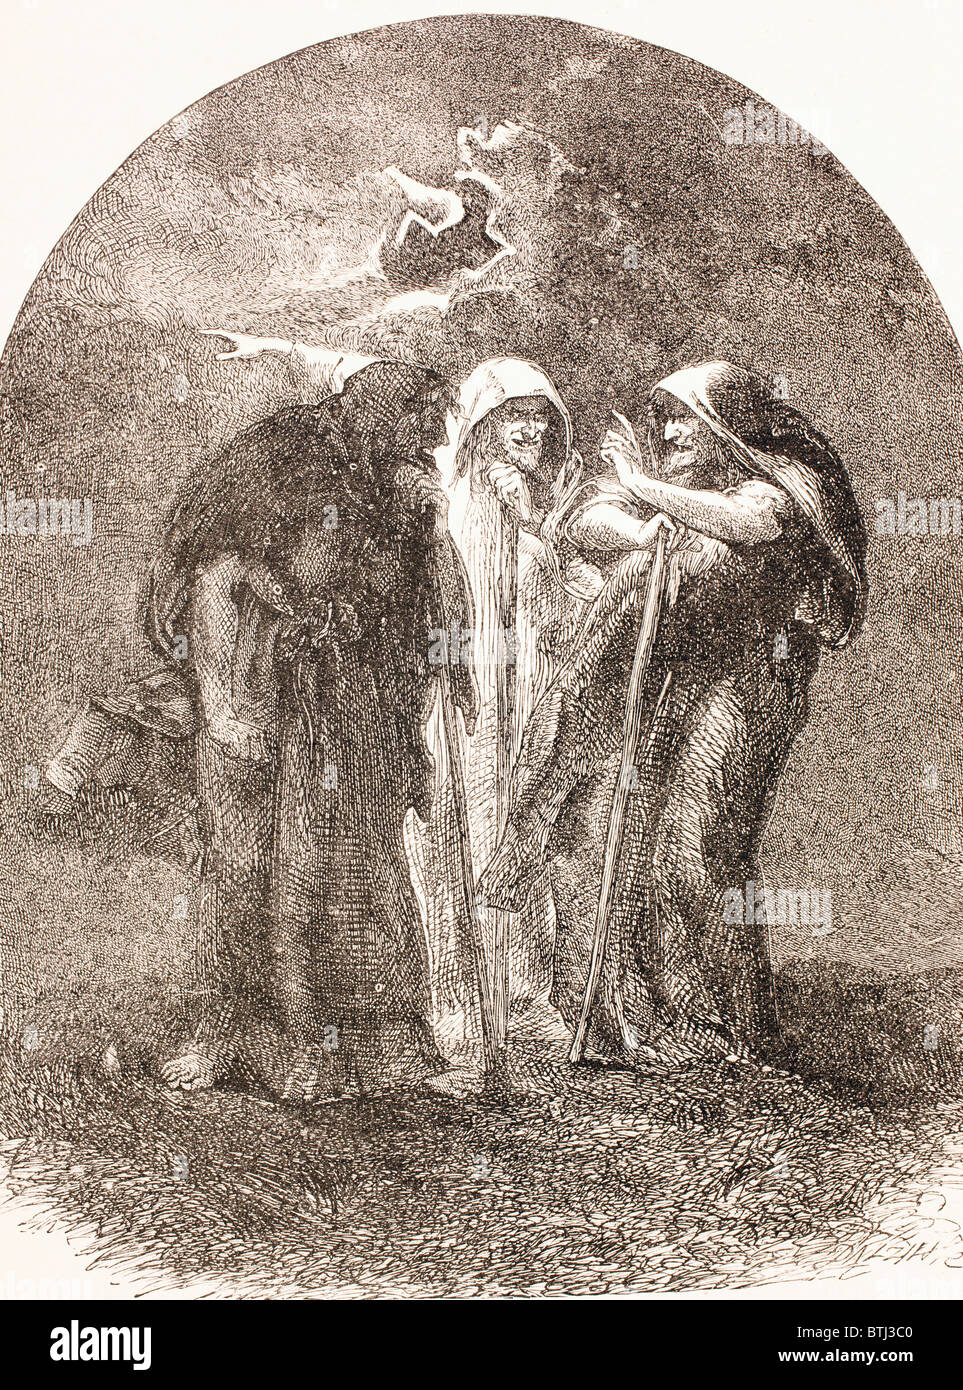 Illustration des sorcières de Macbeth. Photo Stock